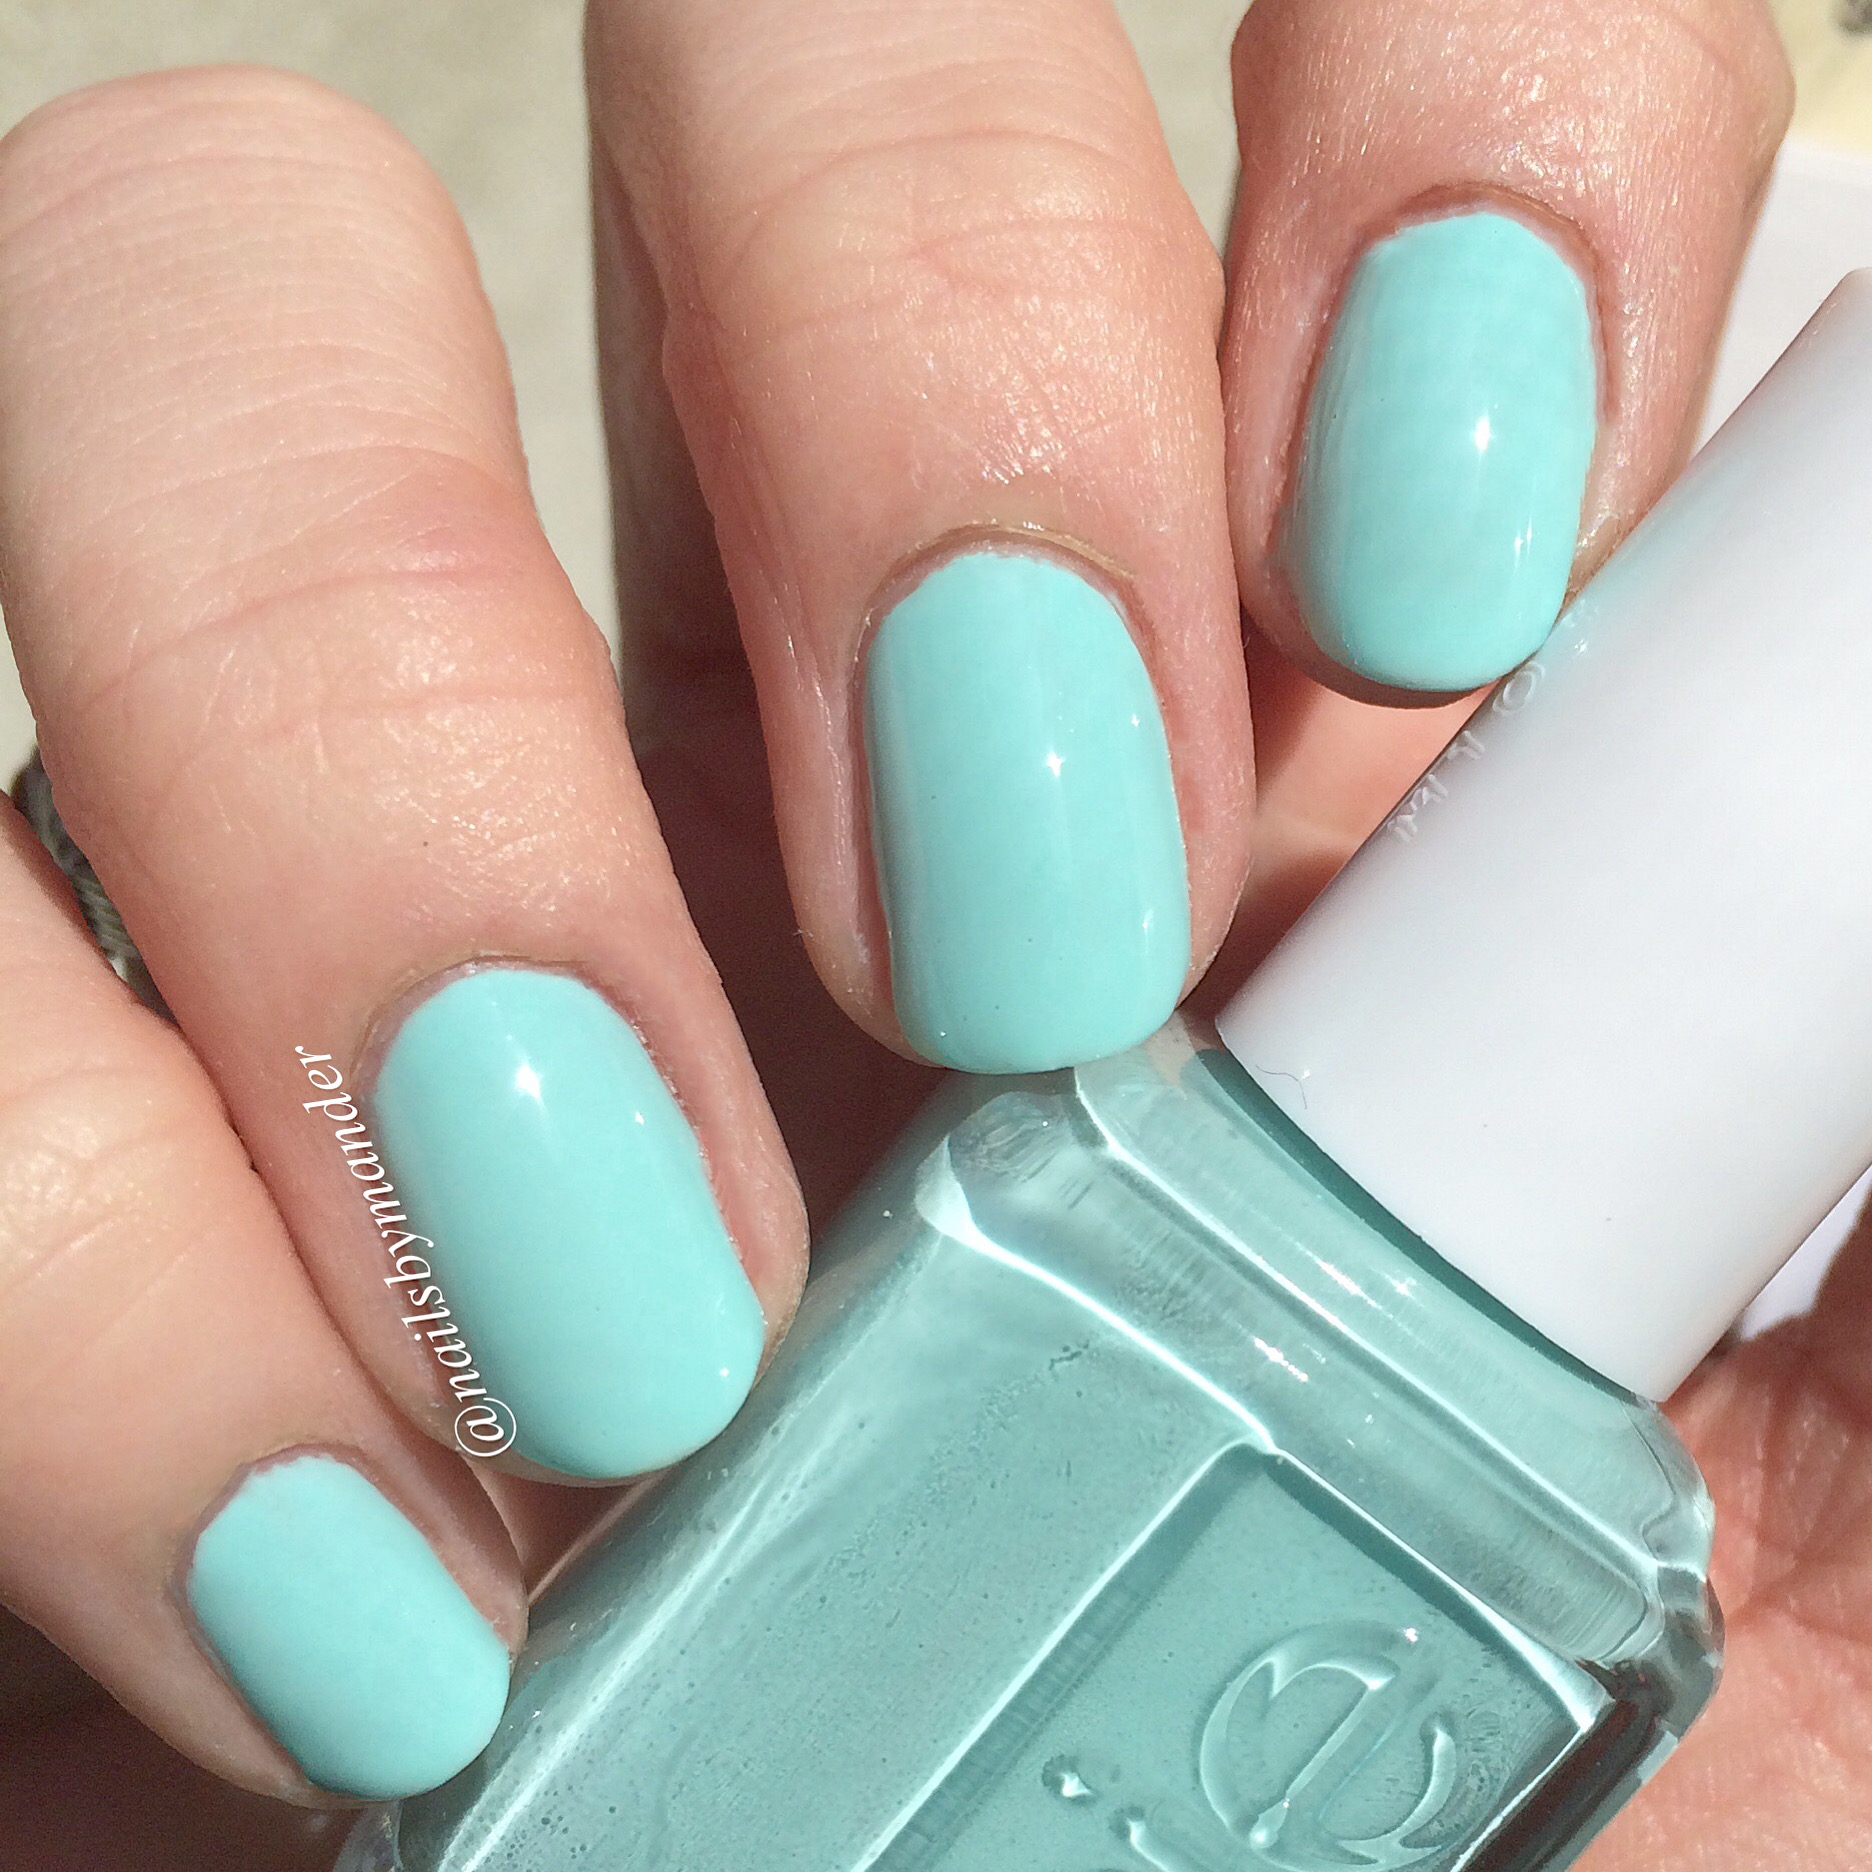 Essie Spring 2015 Collection | The Painted Panda